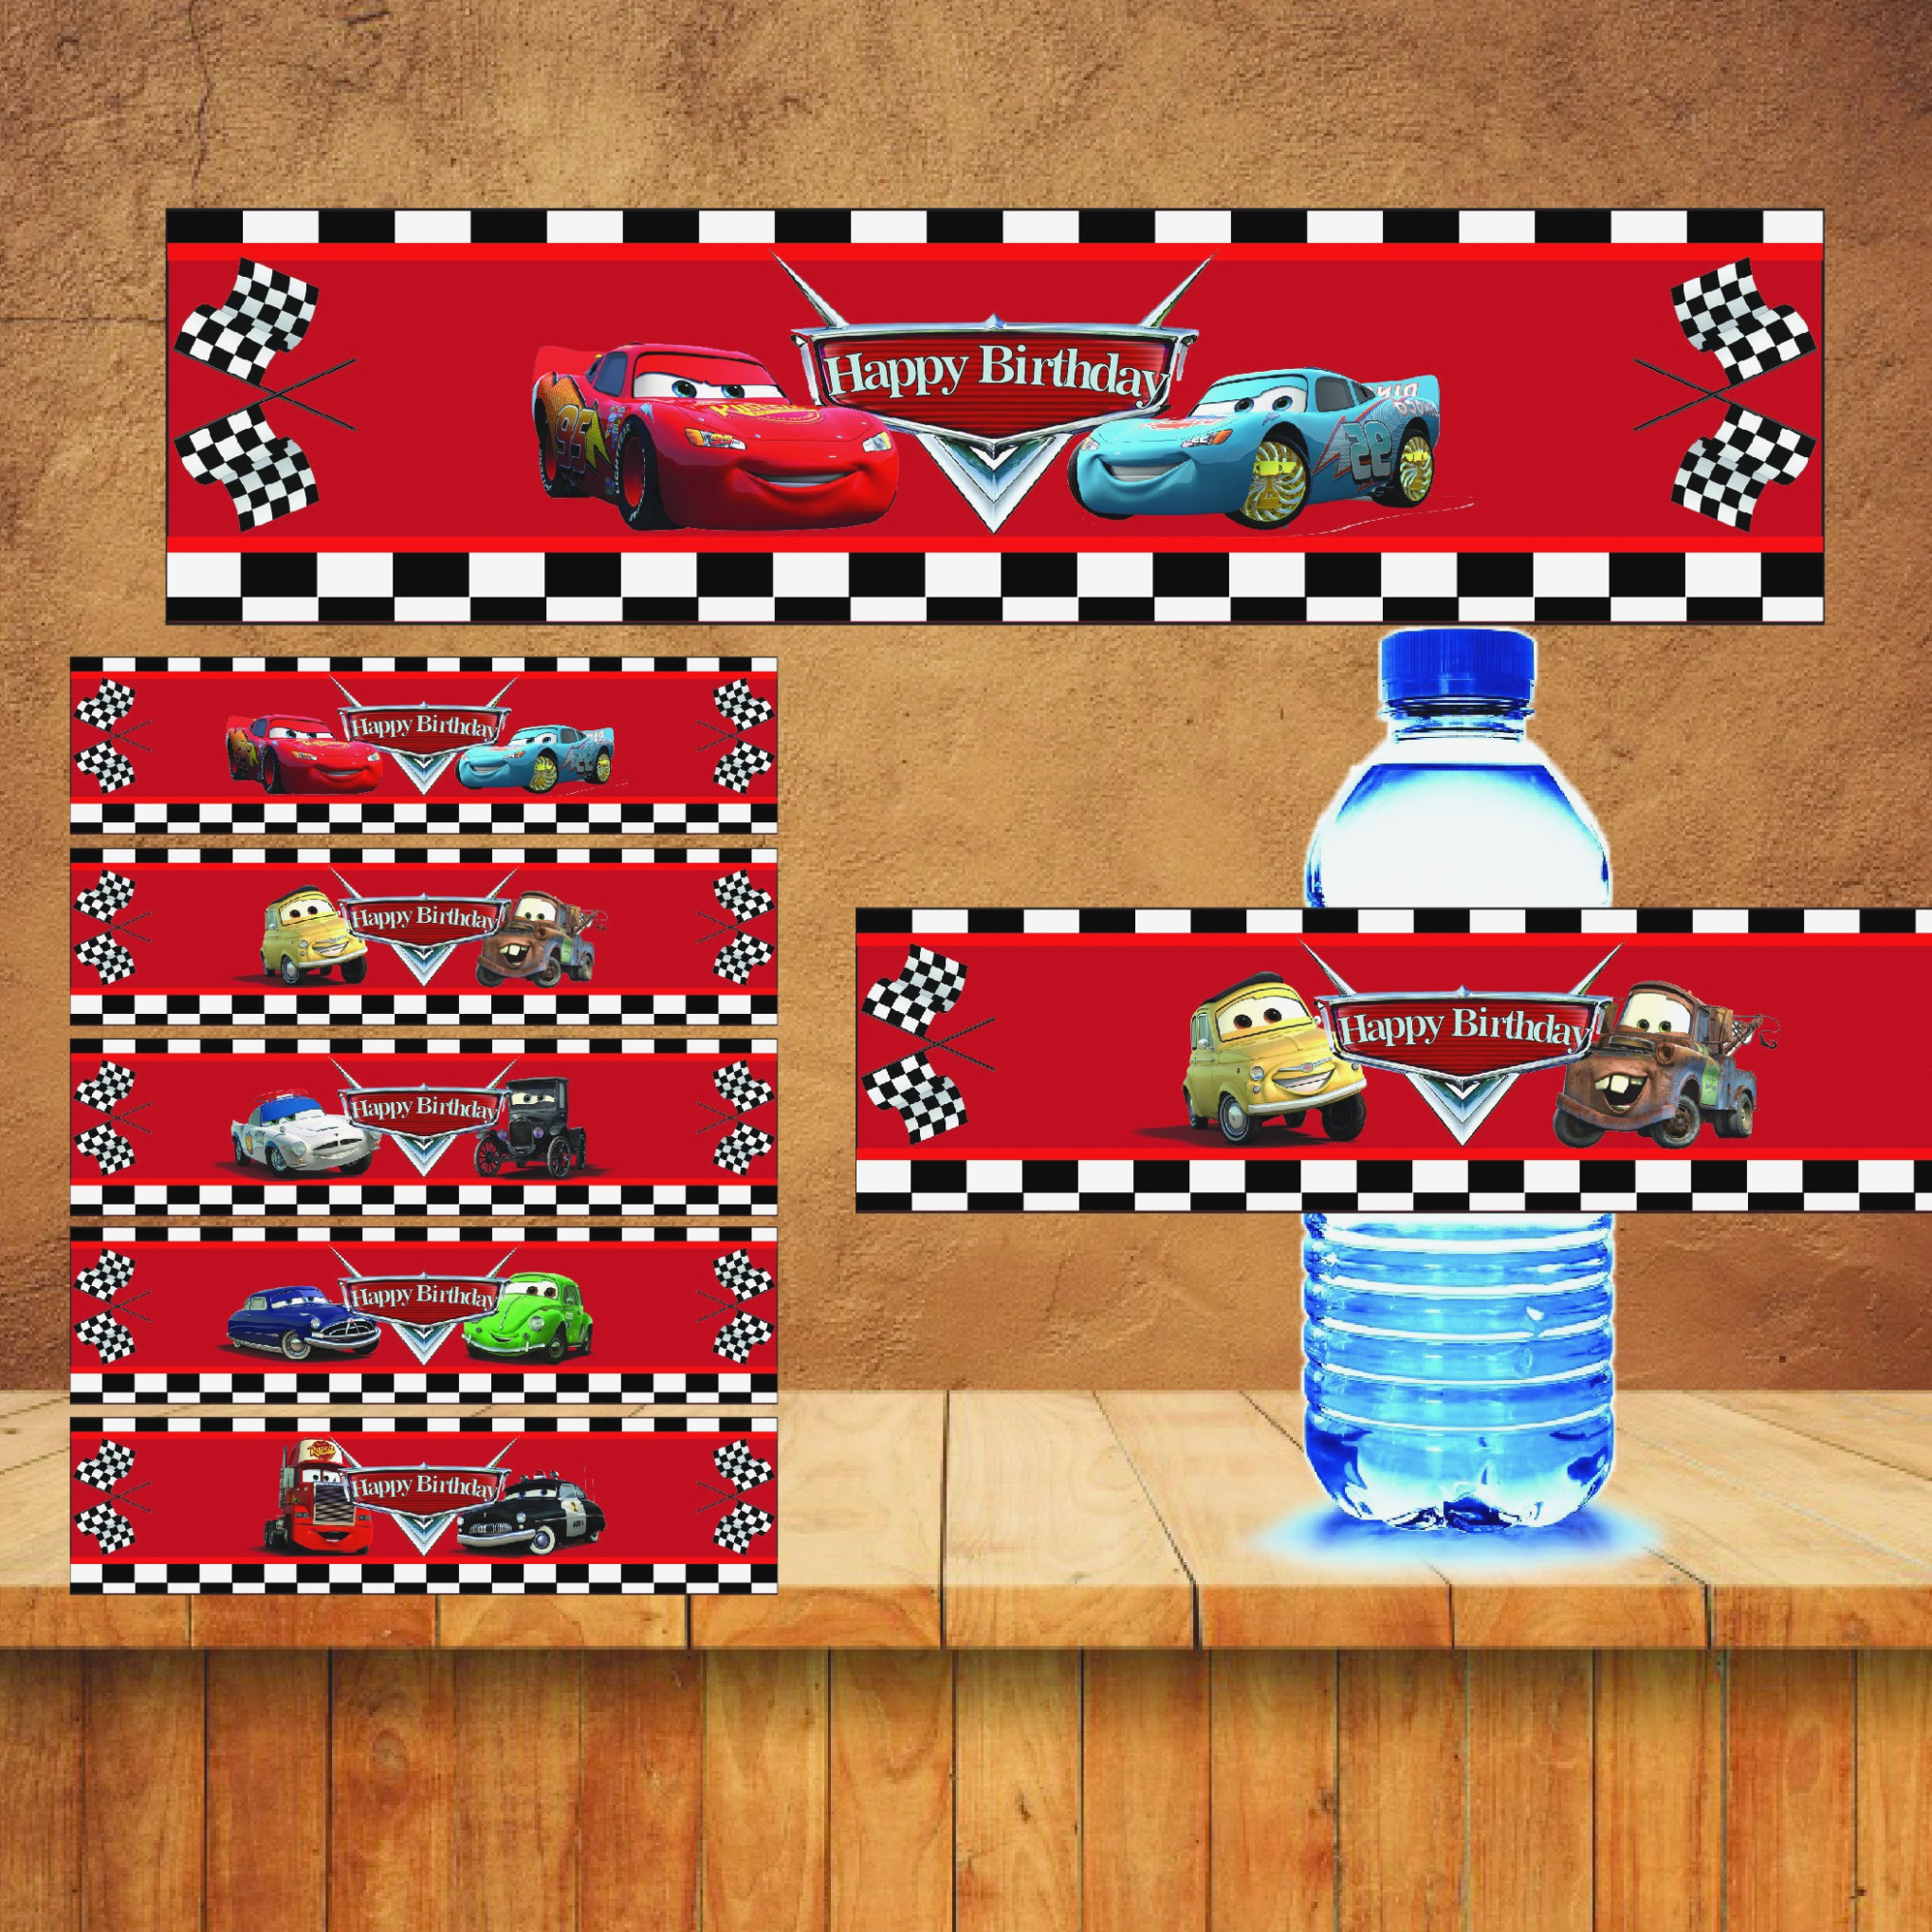 Learn All About Cars Water | Label Maker Ideas Information - Free Printable Disney Cars Water Bottle Labels